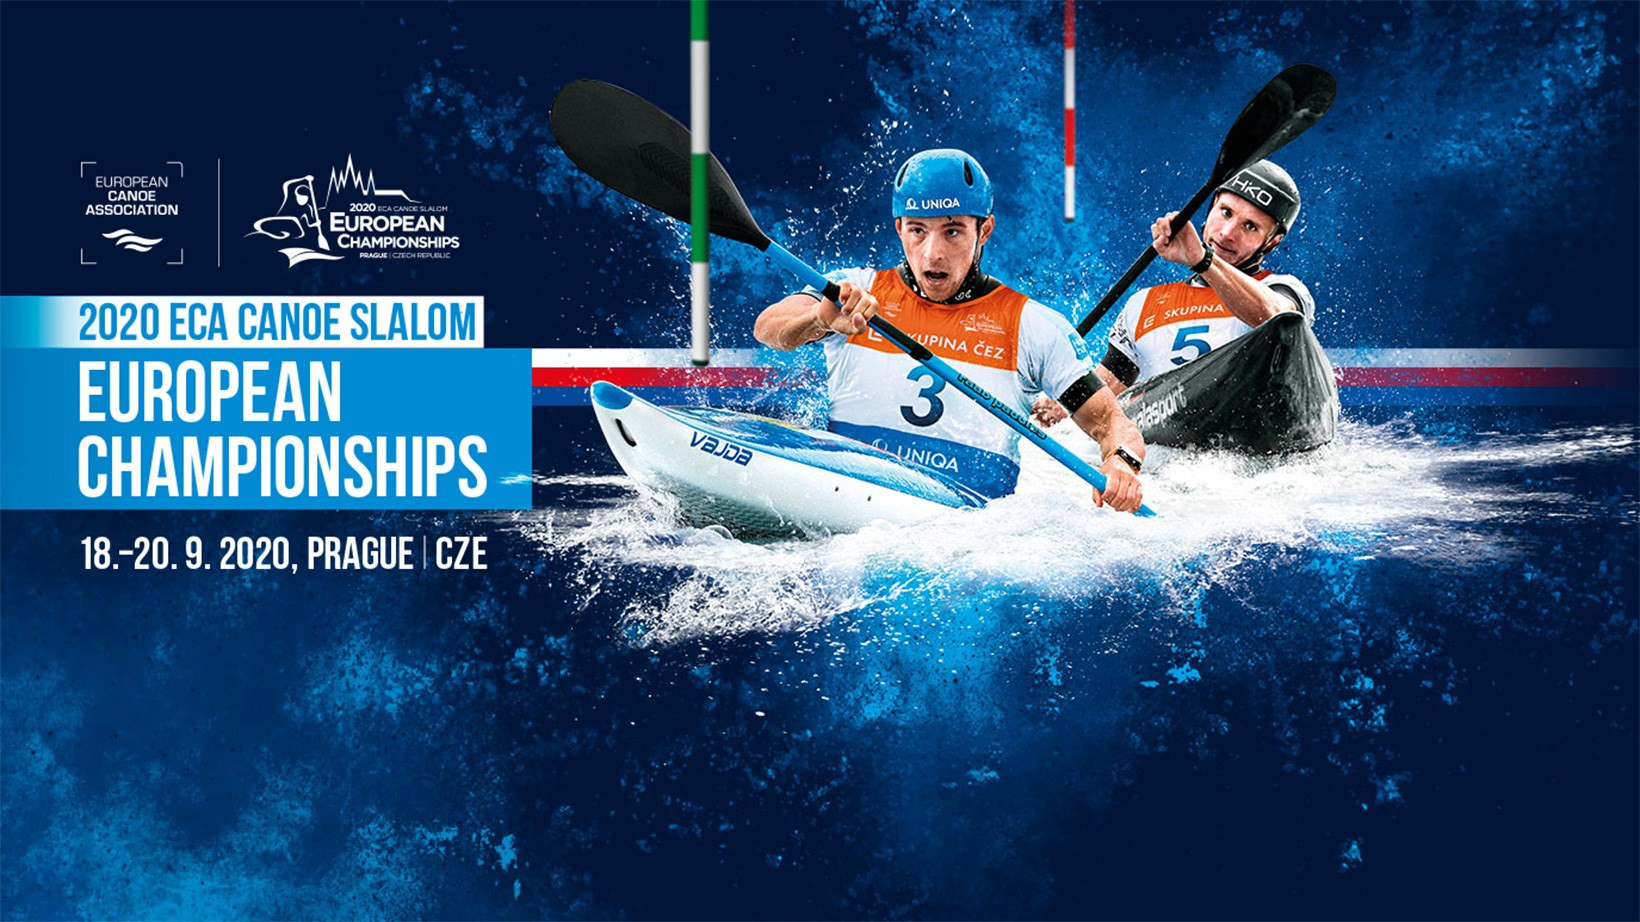 Prague steps in to host 2020 European Canoe Slalom Championships